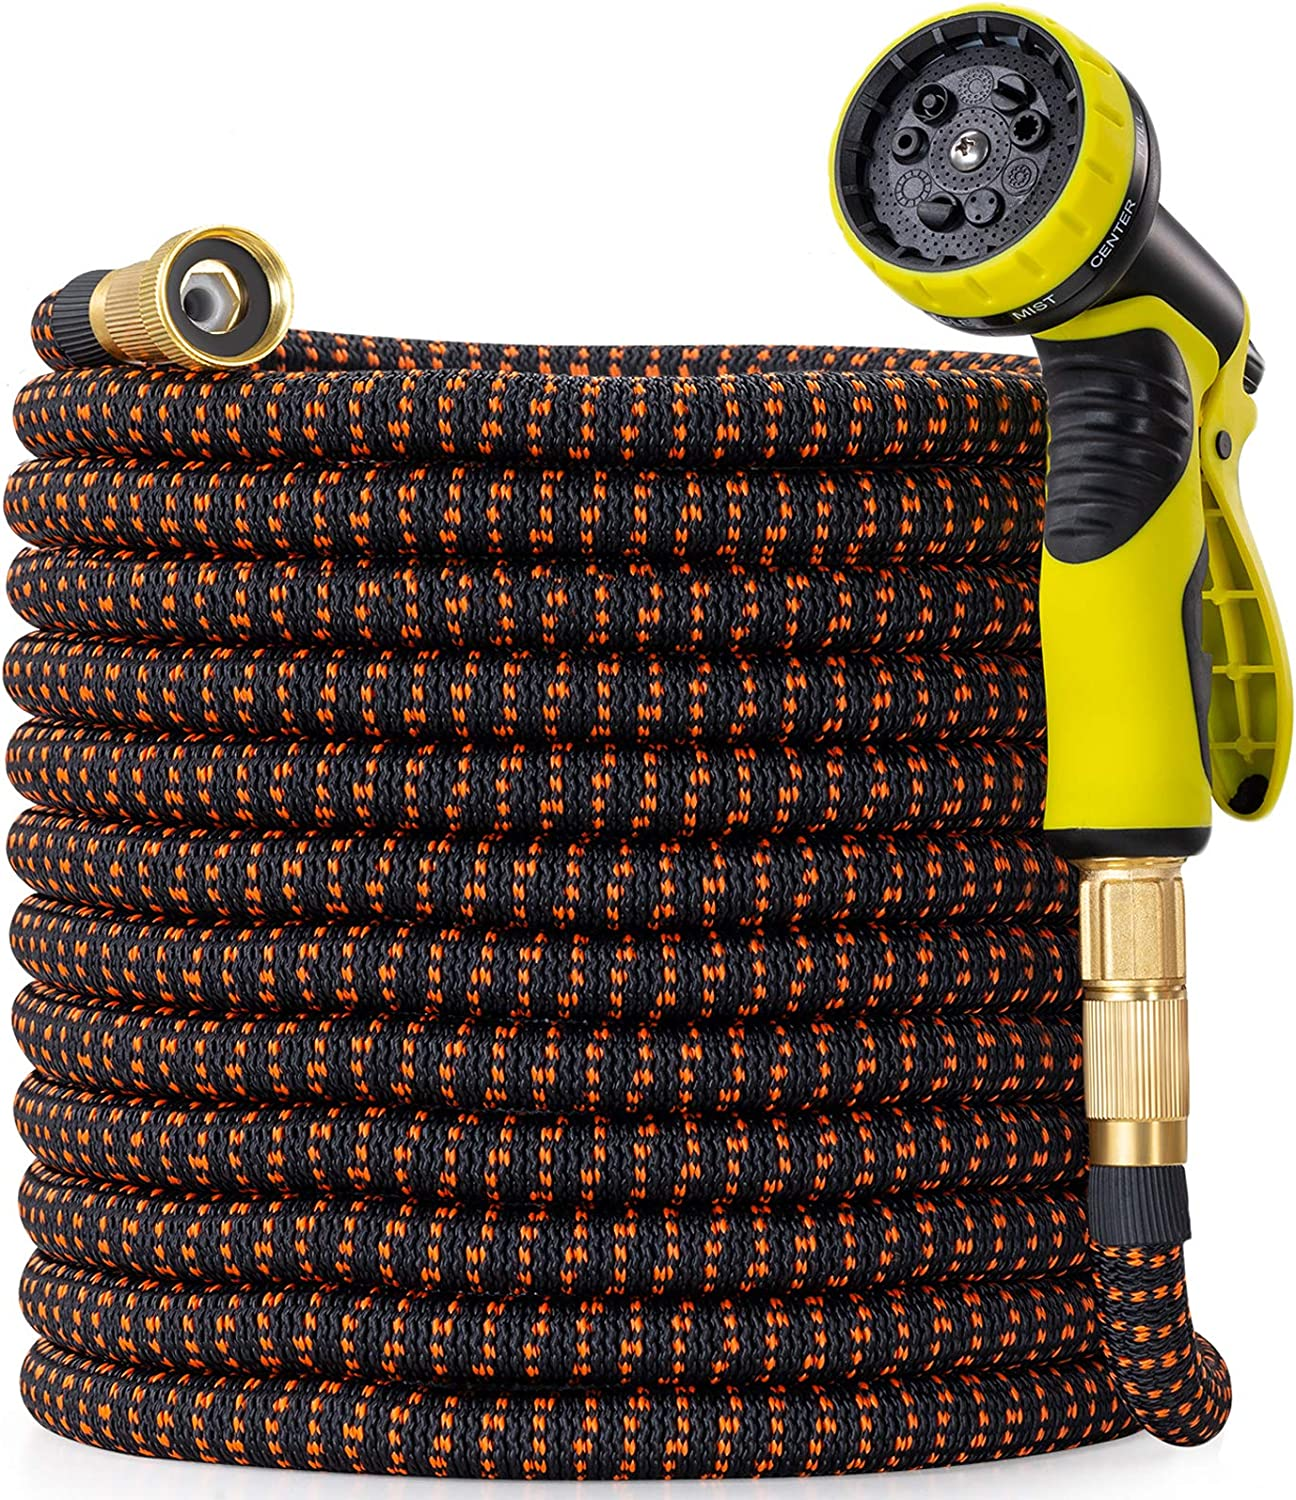 100 ft Garden Hose with 9 Function Nozzle, New Expandable Water Hose with Durable Retractable Latex and Fabric, Solid Brass Fittings, Kink Free Lightweight Flexible Hose Pipe for Gardening, Washing